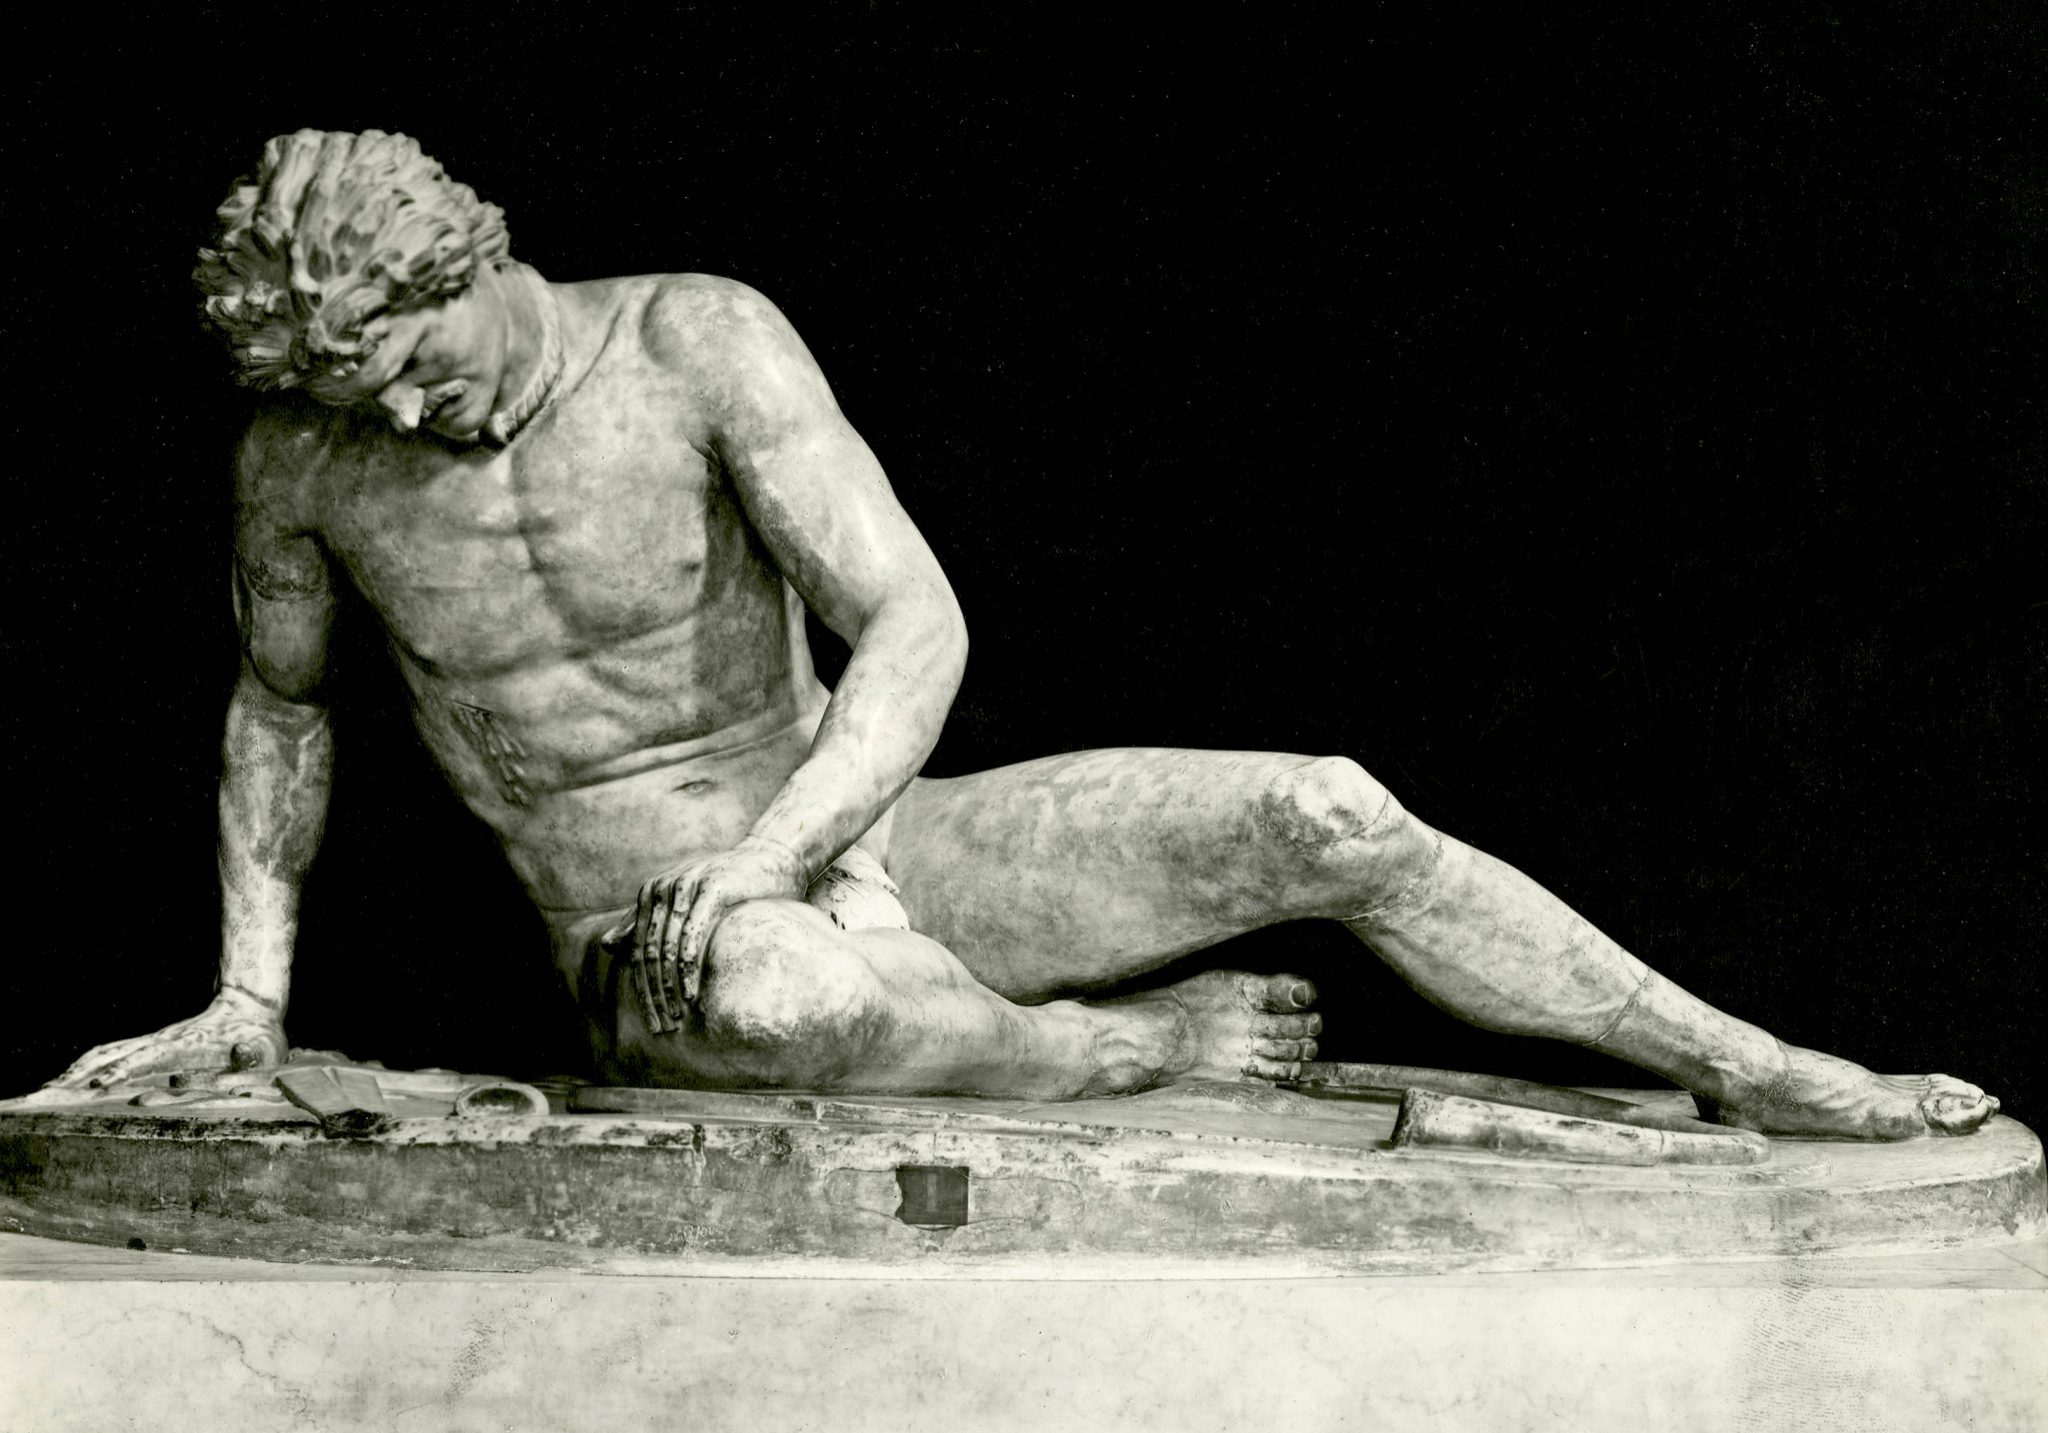 <p><i>The Dying Gaul.</i></p><p>Roman copy after original of 3rd c. BCE.</p><p>Marble. Musei Capitolini, Rome.</p>